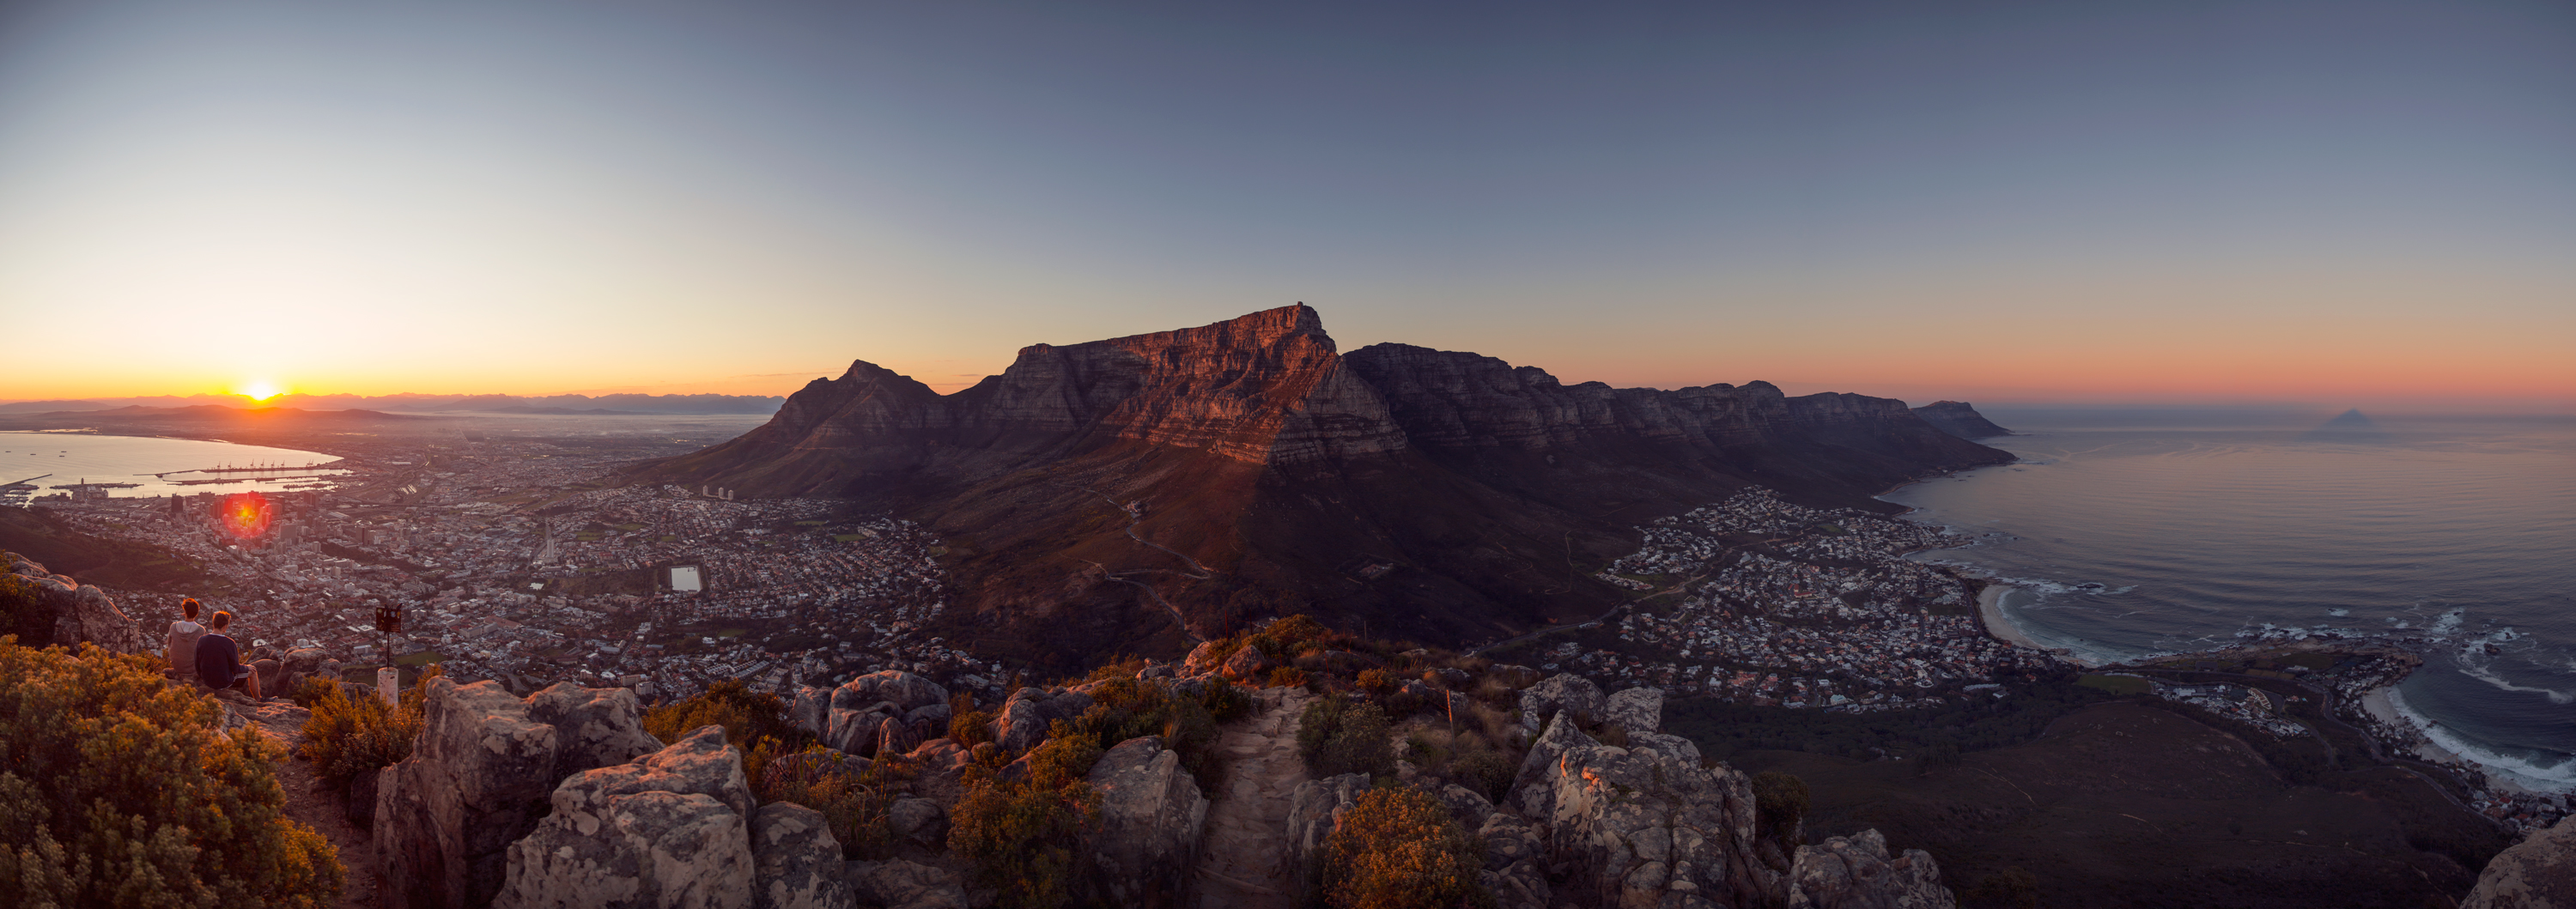 panorama-view-cape-town-city